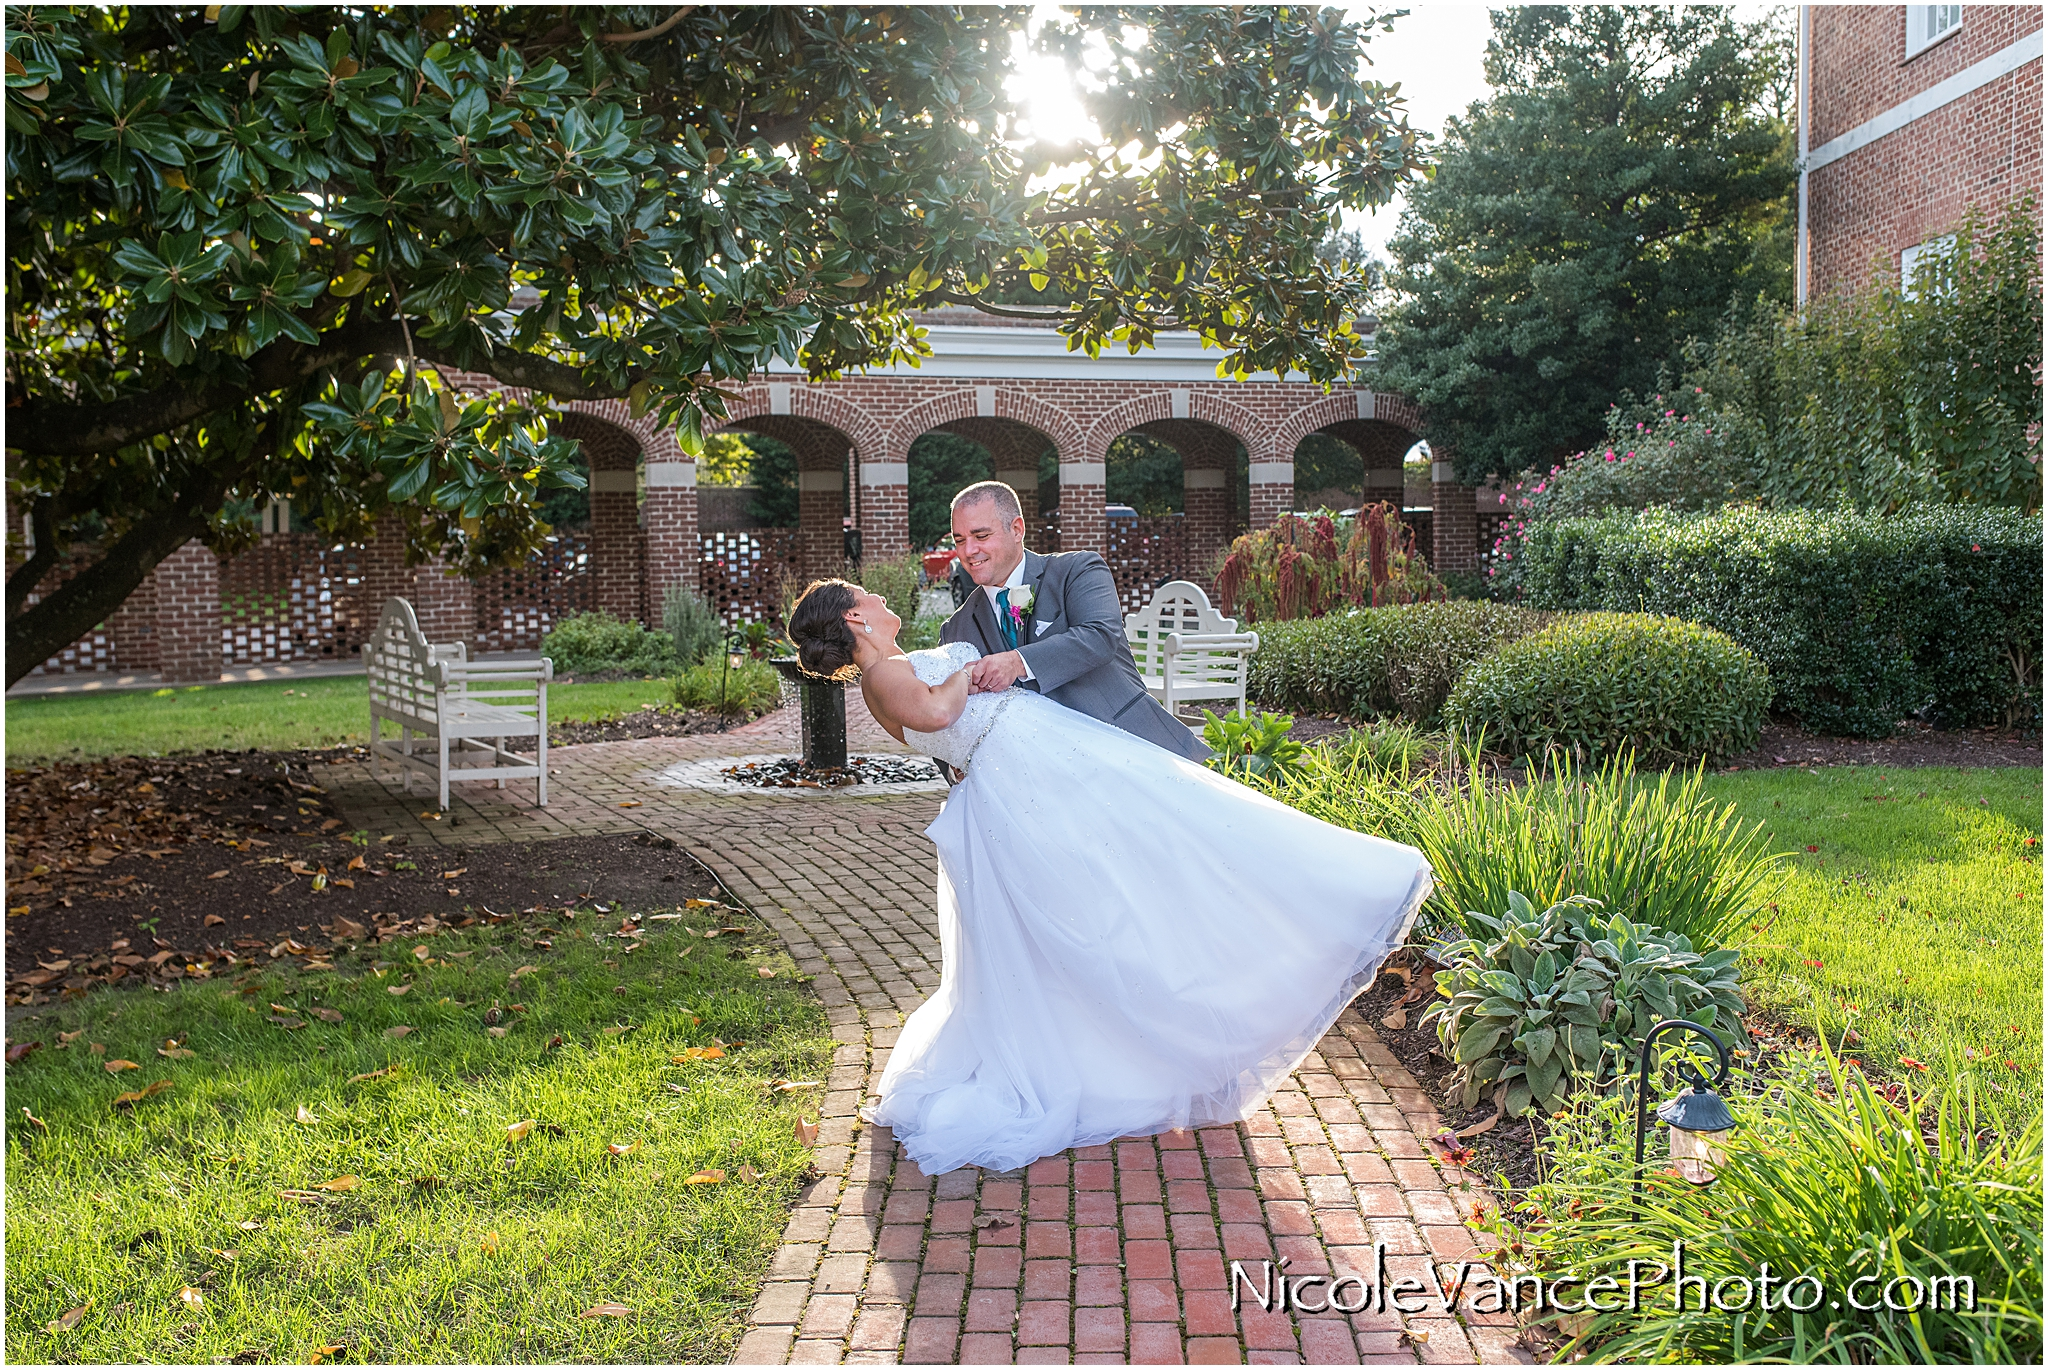 Wedding portraits at the gardens at Virginia Crossings.